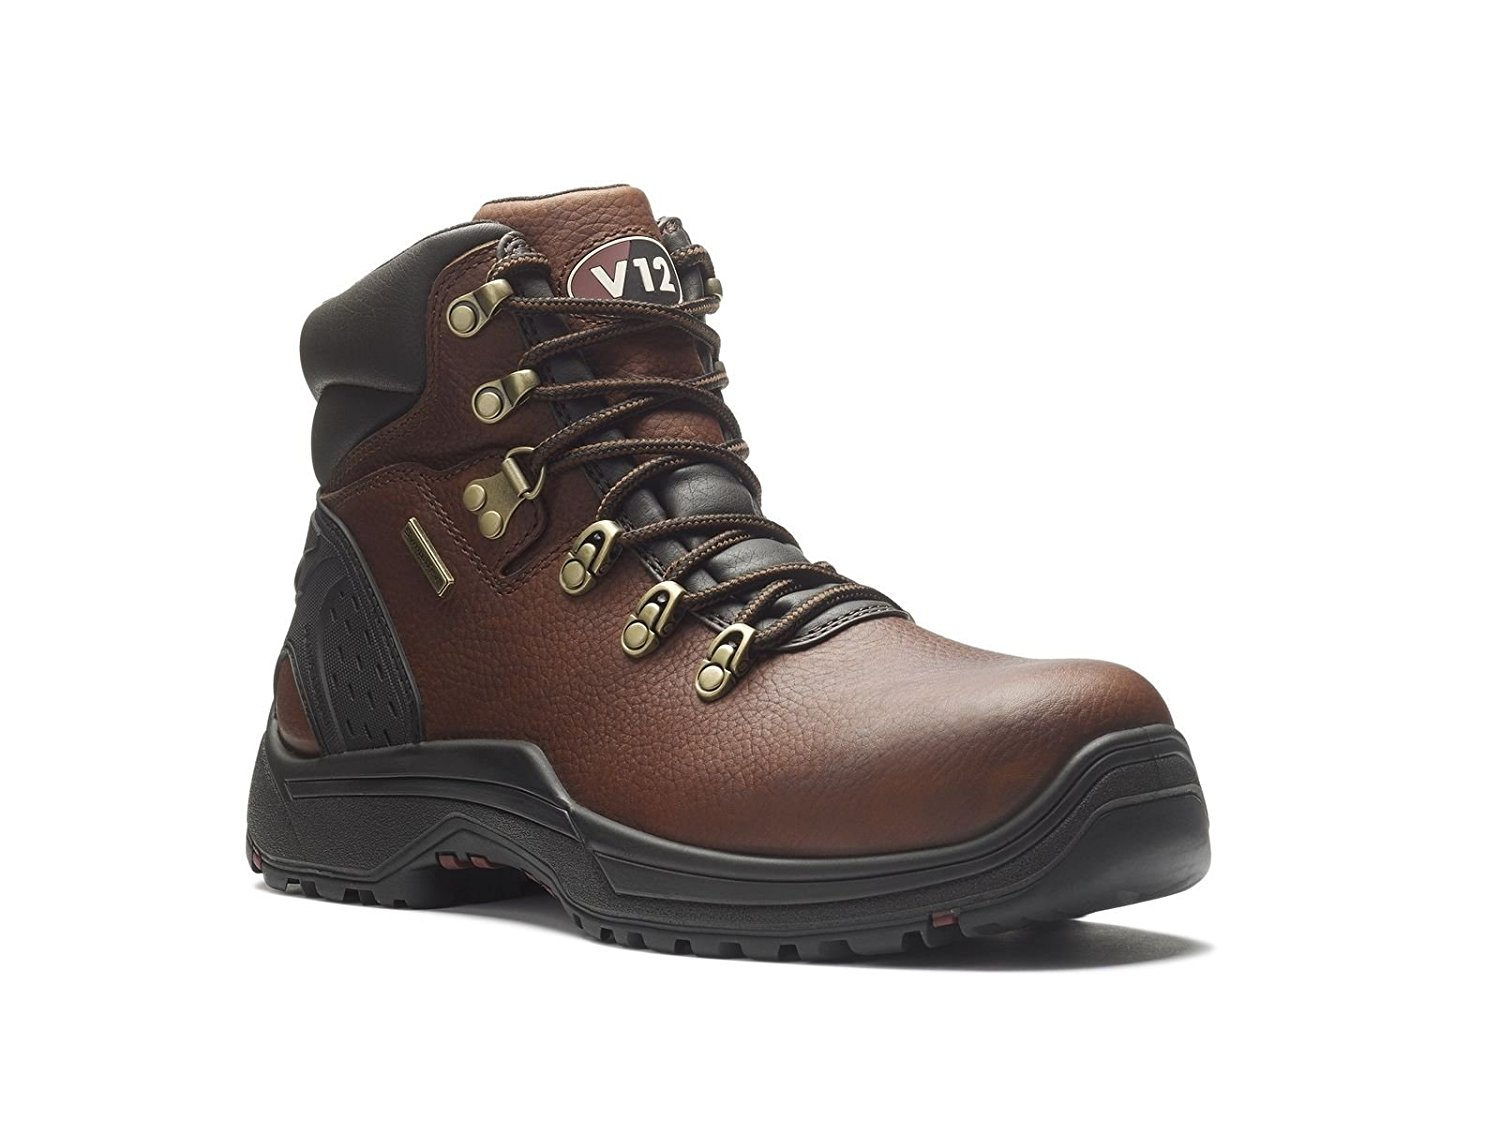 professional sale catch fashion V12 Storm IGS Composite Waterproof S3 Safety Hiker Boots V1219.01